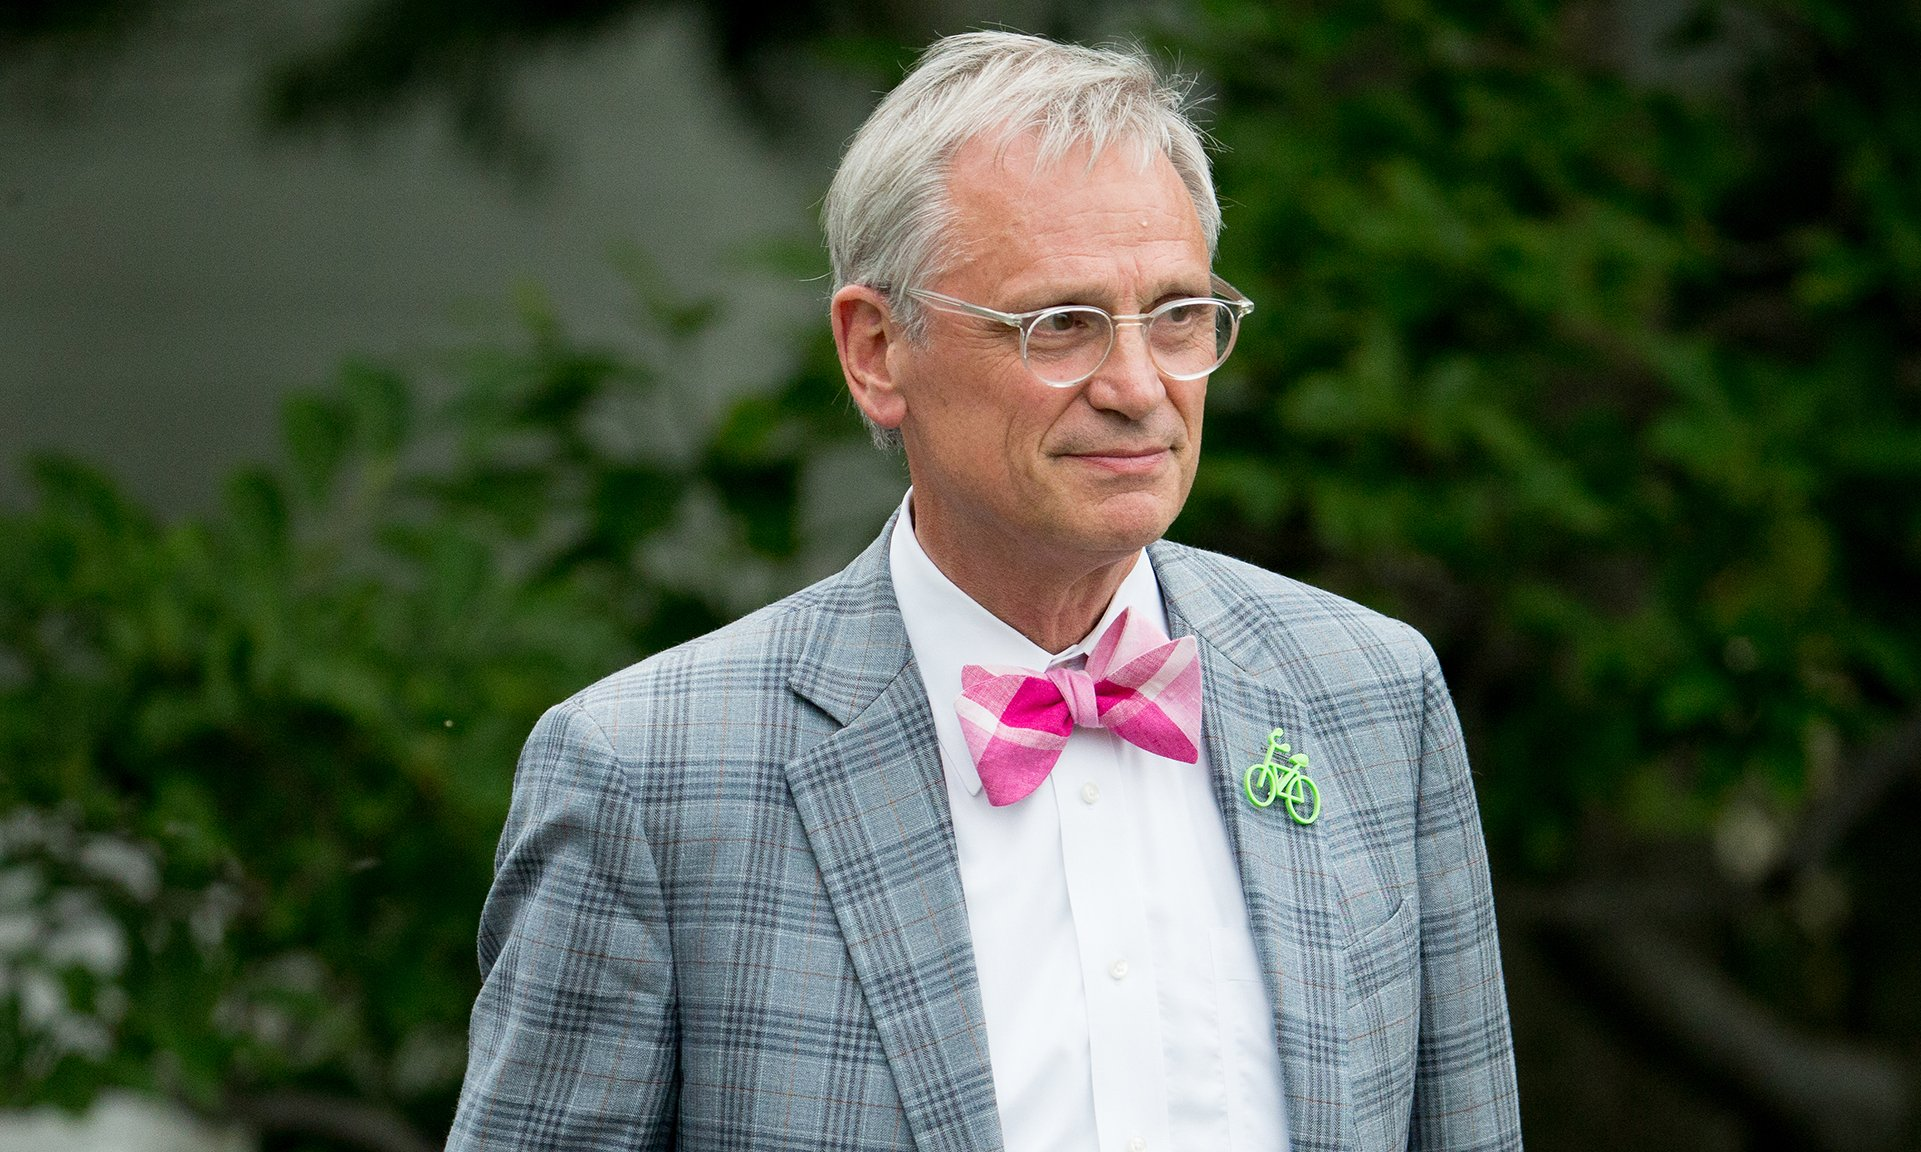 Blumenauer: Congress Will Be 'Better Than Ever' on Cannabis | Not only did Democrats take control of the House in Tuesday's elections, but voters booted a handful of outspoken cannabis opponents, including Bob Goodlatte (R-VA), who chairs the House Judiciary Committee, and Pete Sessions (R-TX)